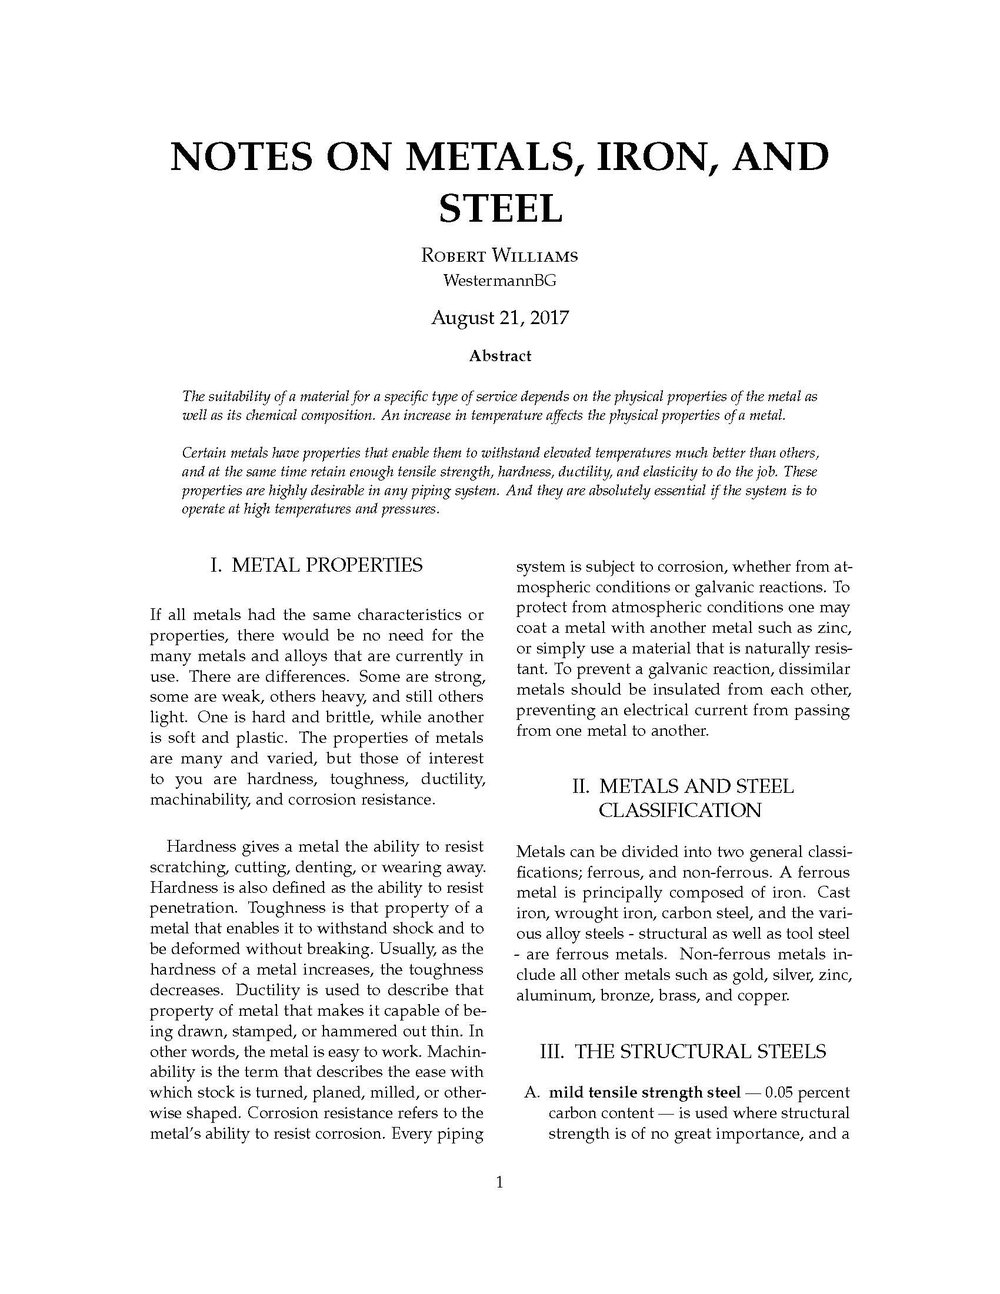 Notes on Metals Iron and Steel_Page_1.jpg